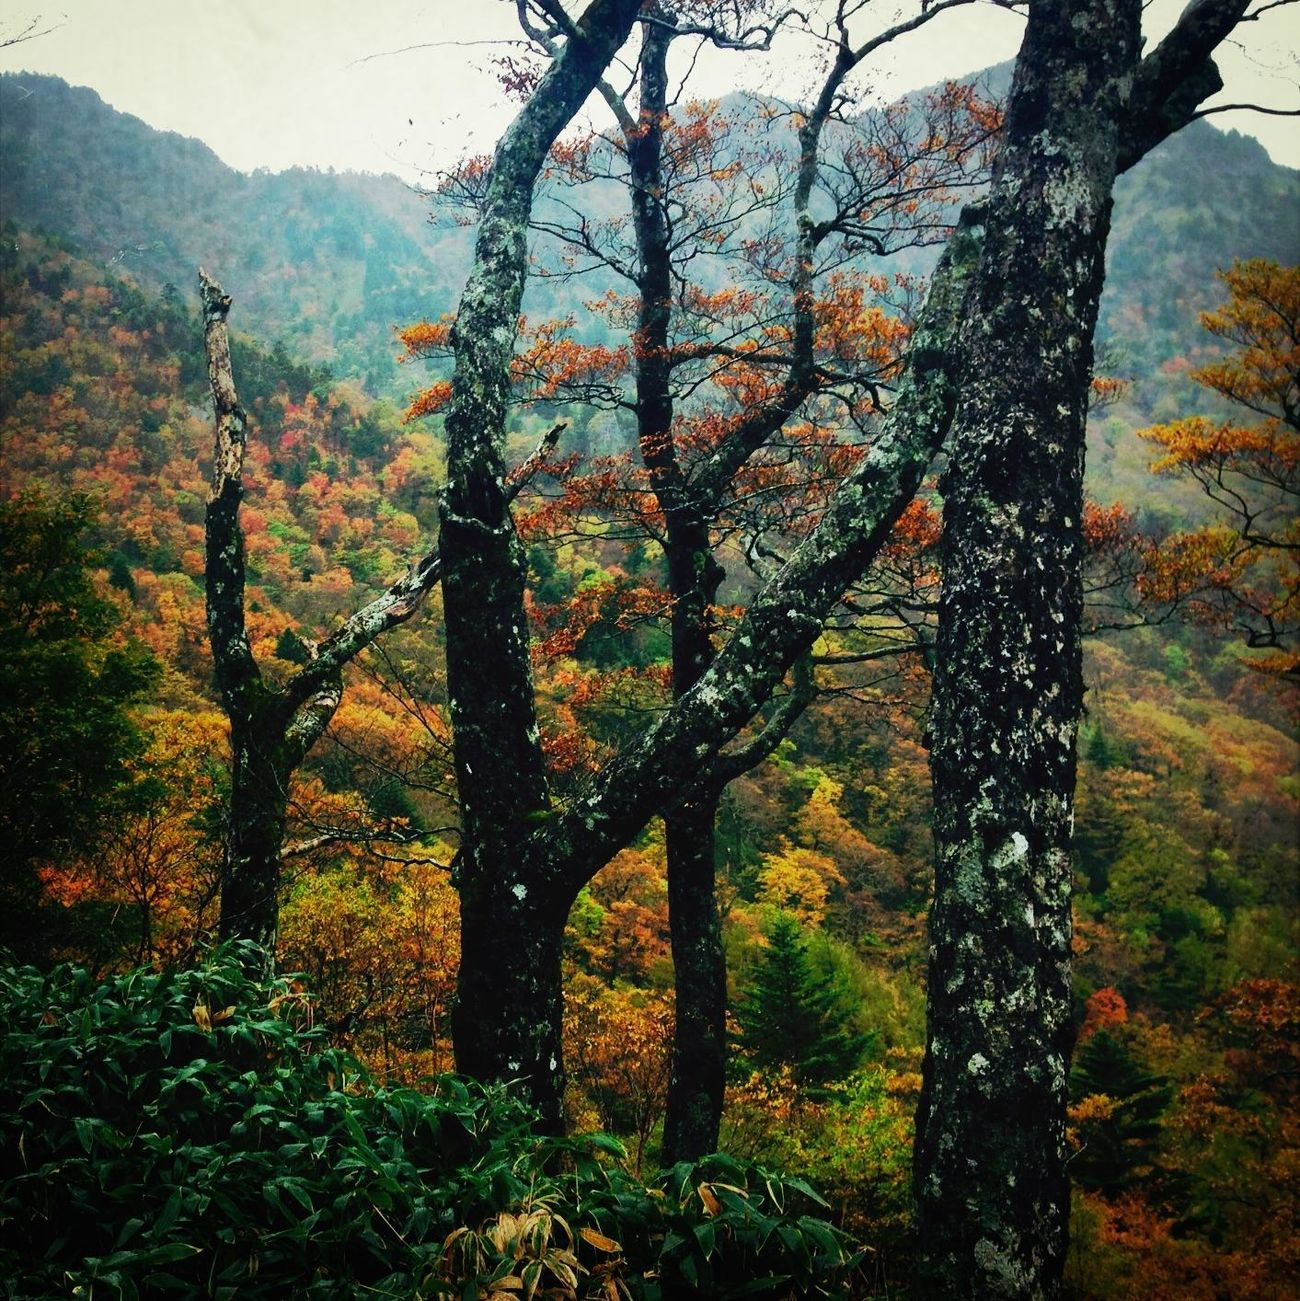 TreePorn Hiking IPhoneography Nature